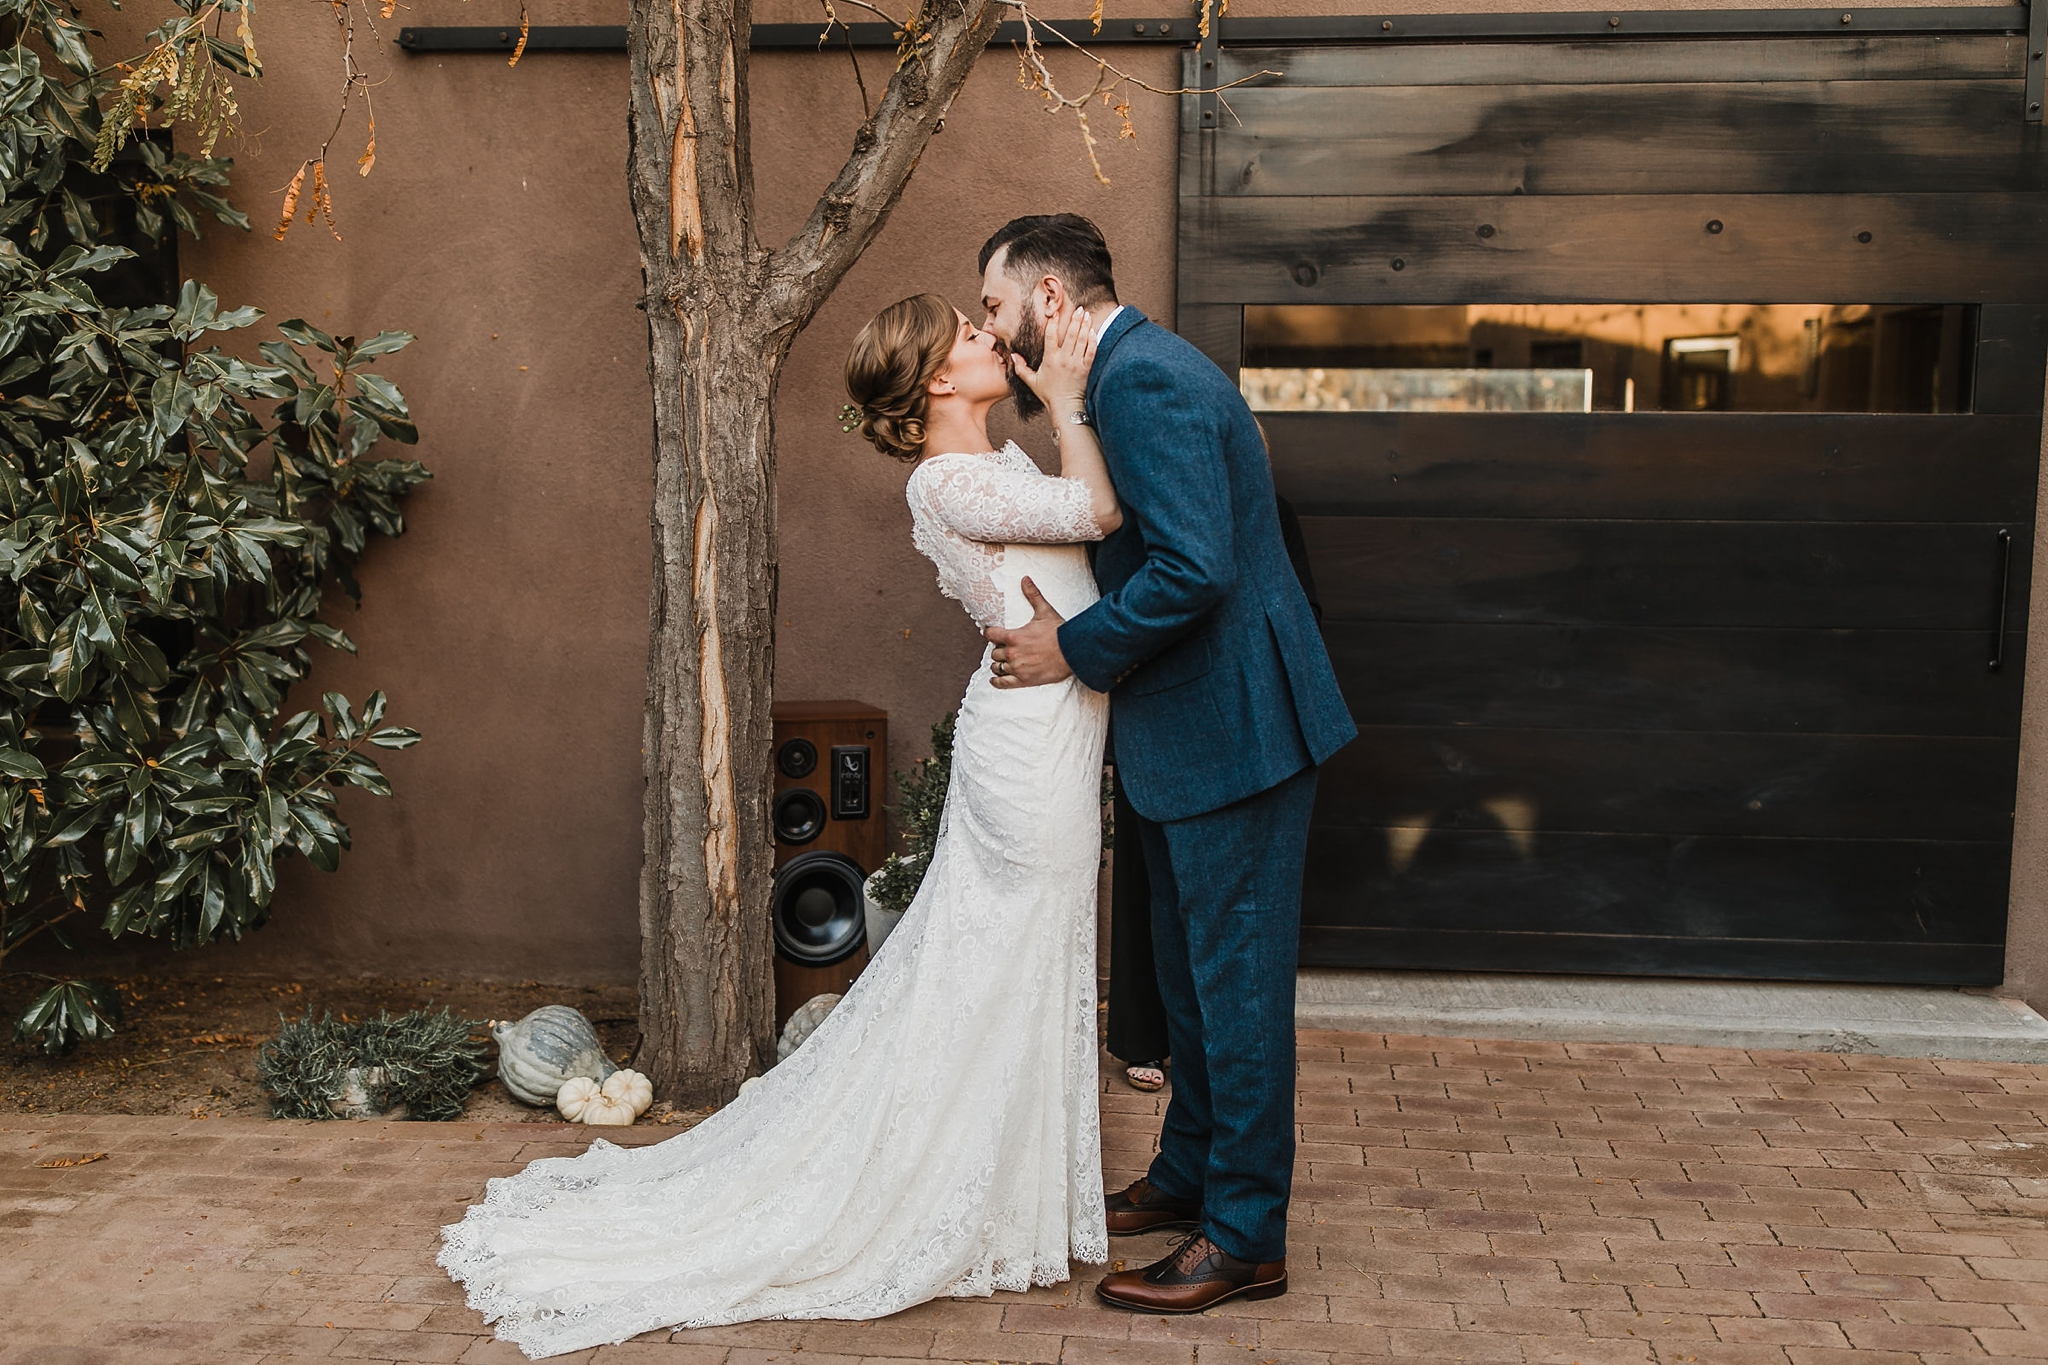 Alicia+lucia+photography+-+albuquerque+wedding+photographer+-+santa+fe+wedding+photography+-+new+mexico+wedding+photographer+-+albuquerque+wedding+-+sarabande+bed+breakfast+-+bed+and+breakfast+wedding_0058.jpg